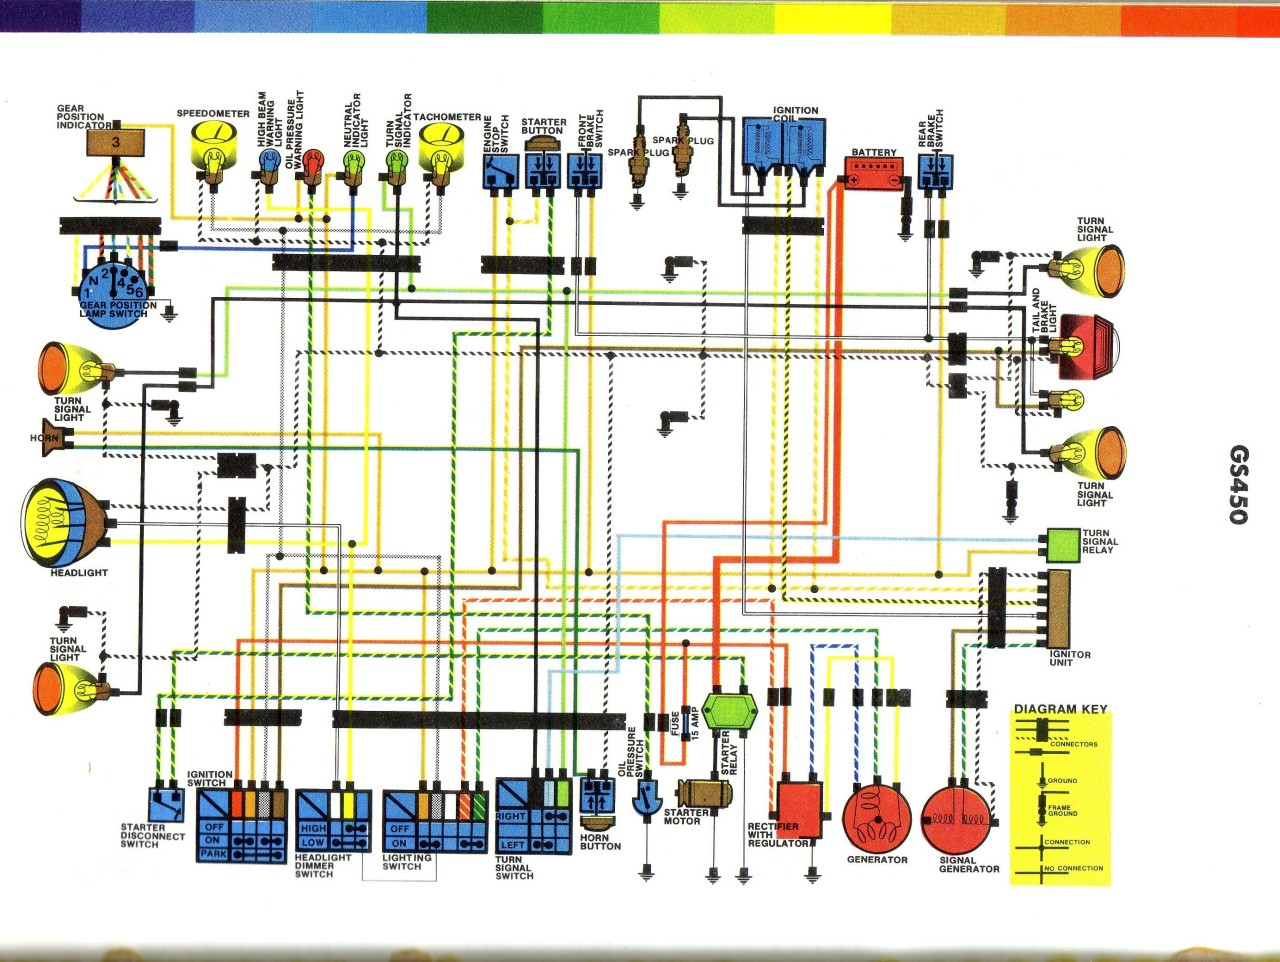 small resolution of gs450 wiring diagram gs450lie gs550 wiring diagram gs450 wiring diagram